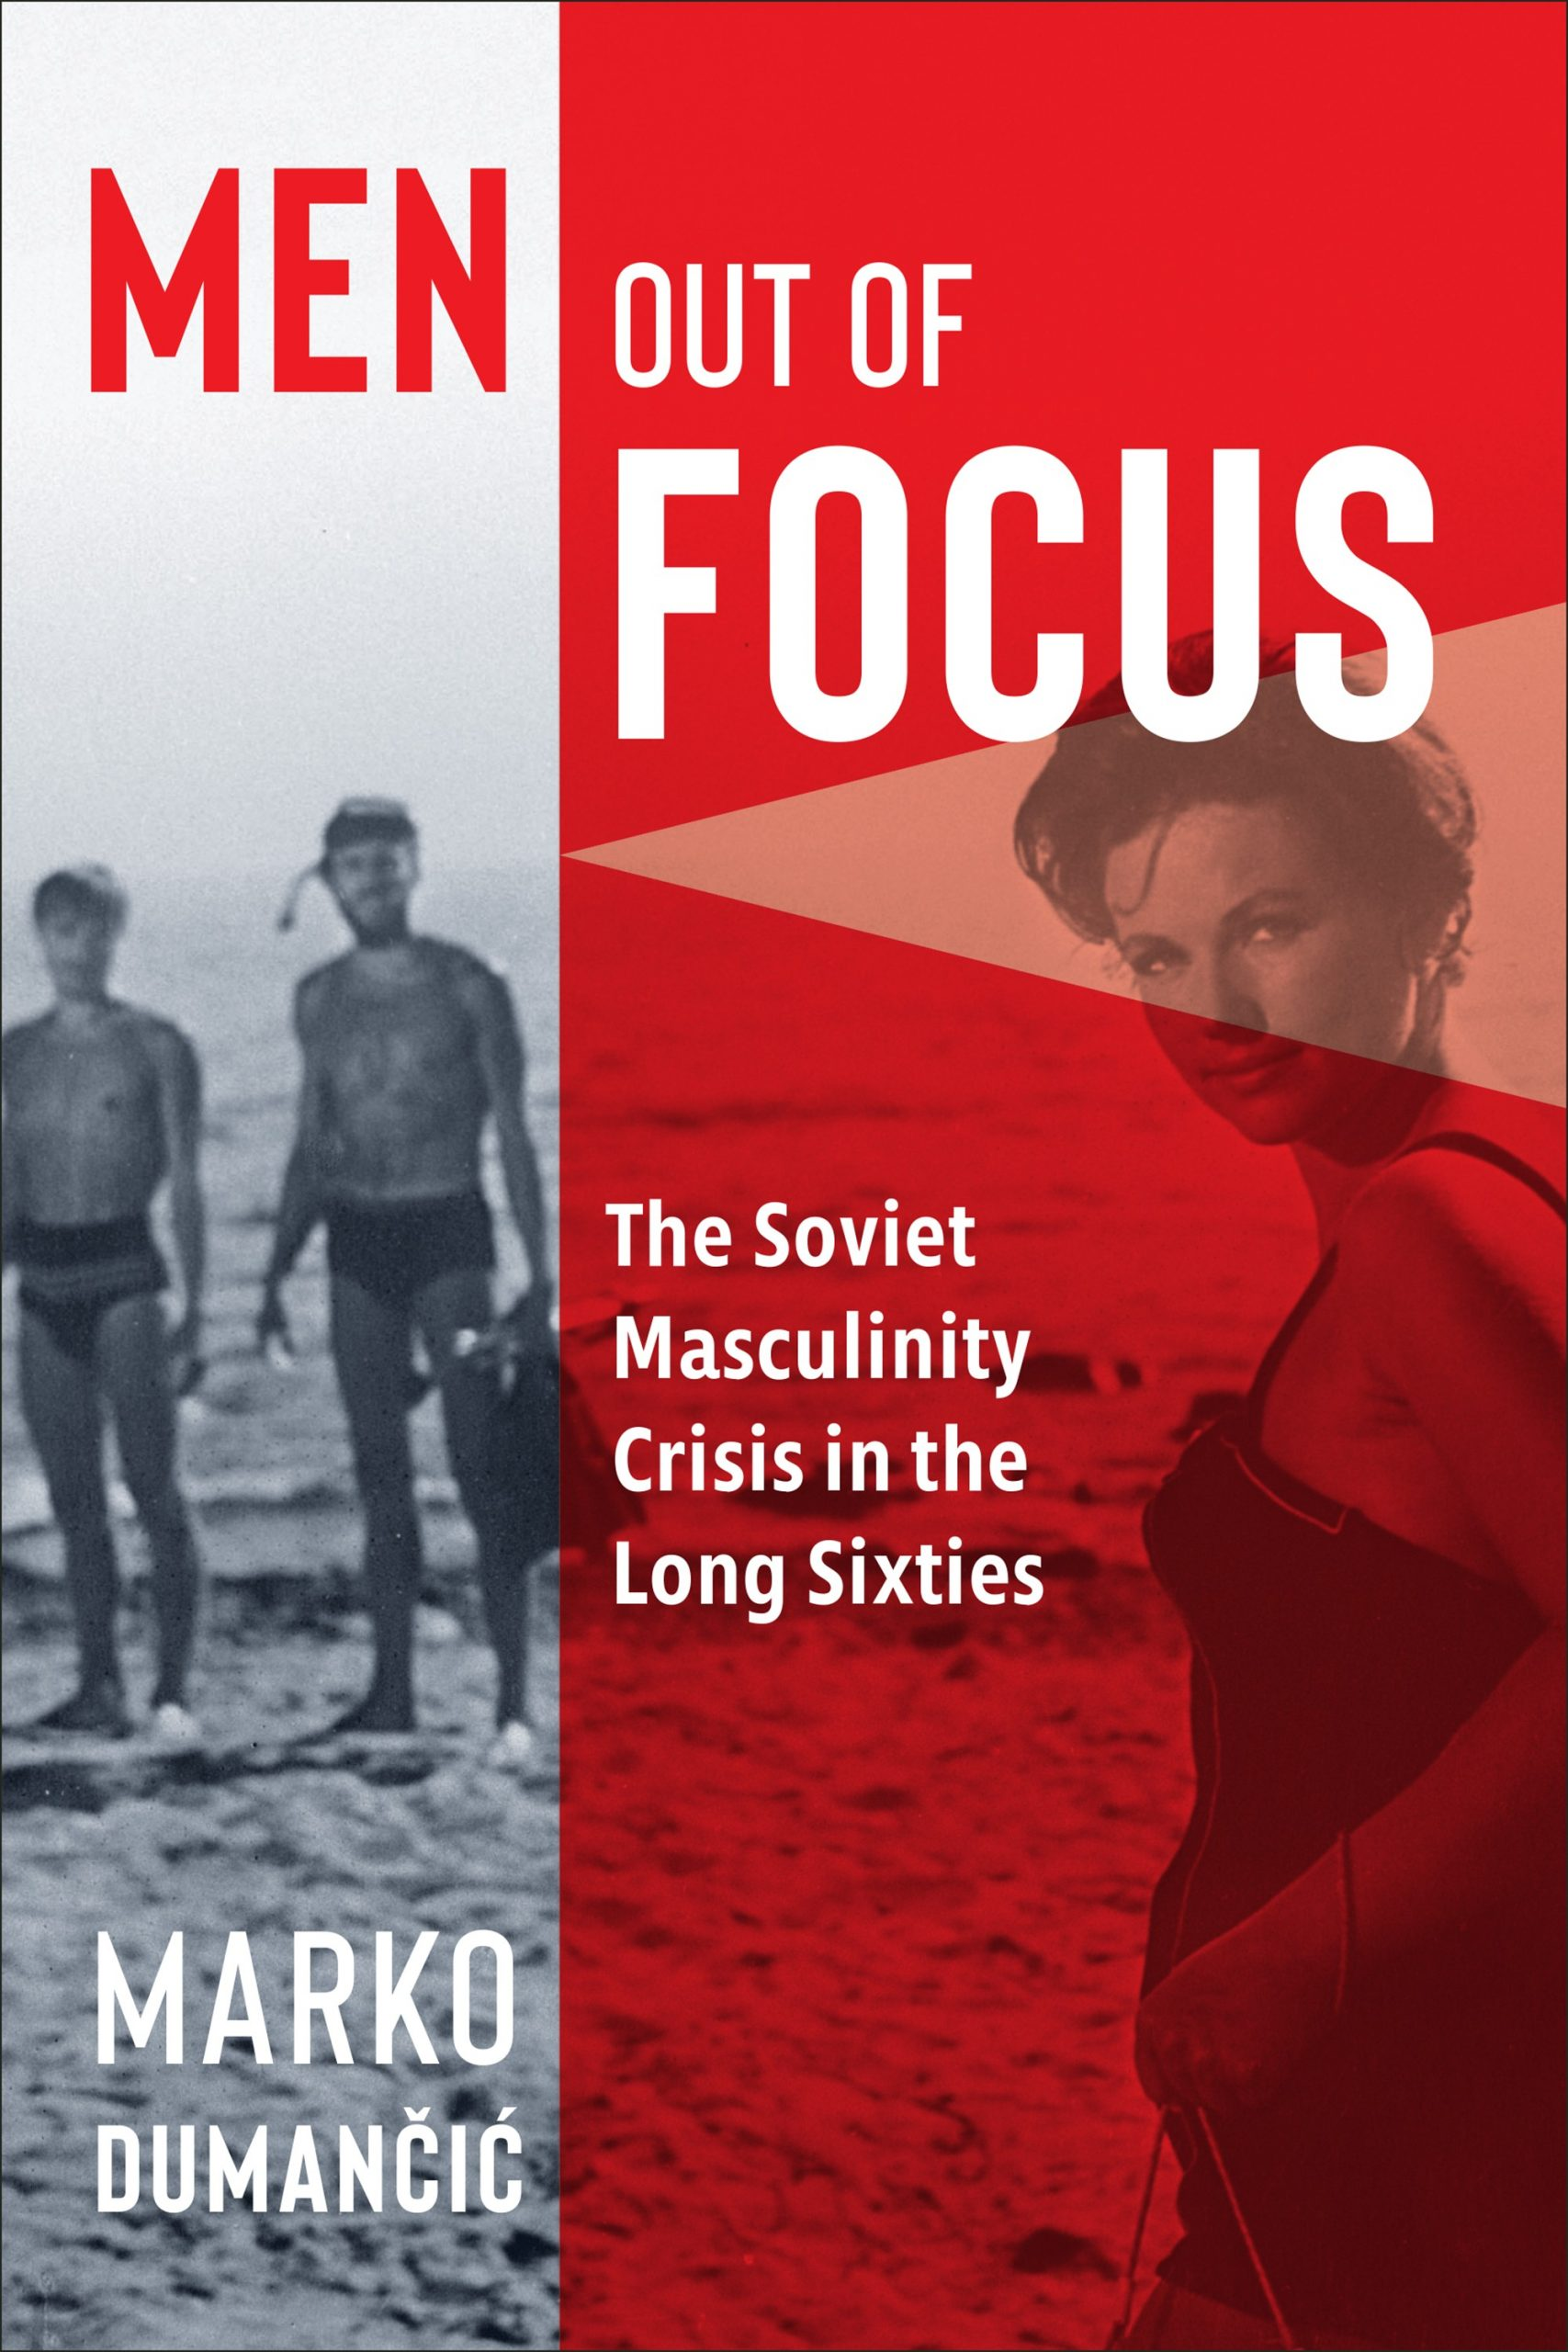 Men Out of Focus: The Soviet Masculinity Crisis in the Long Sixties